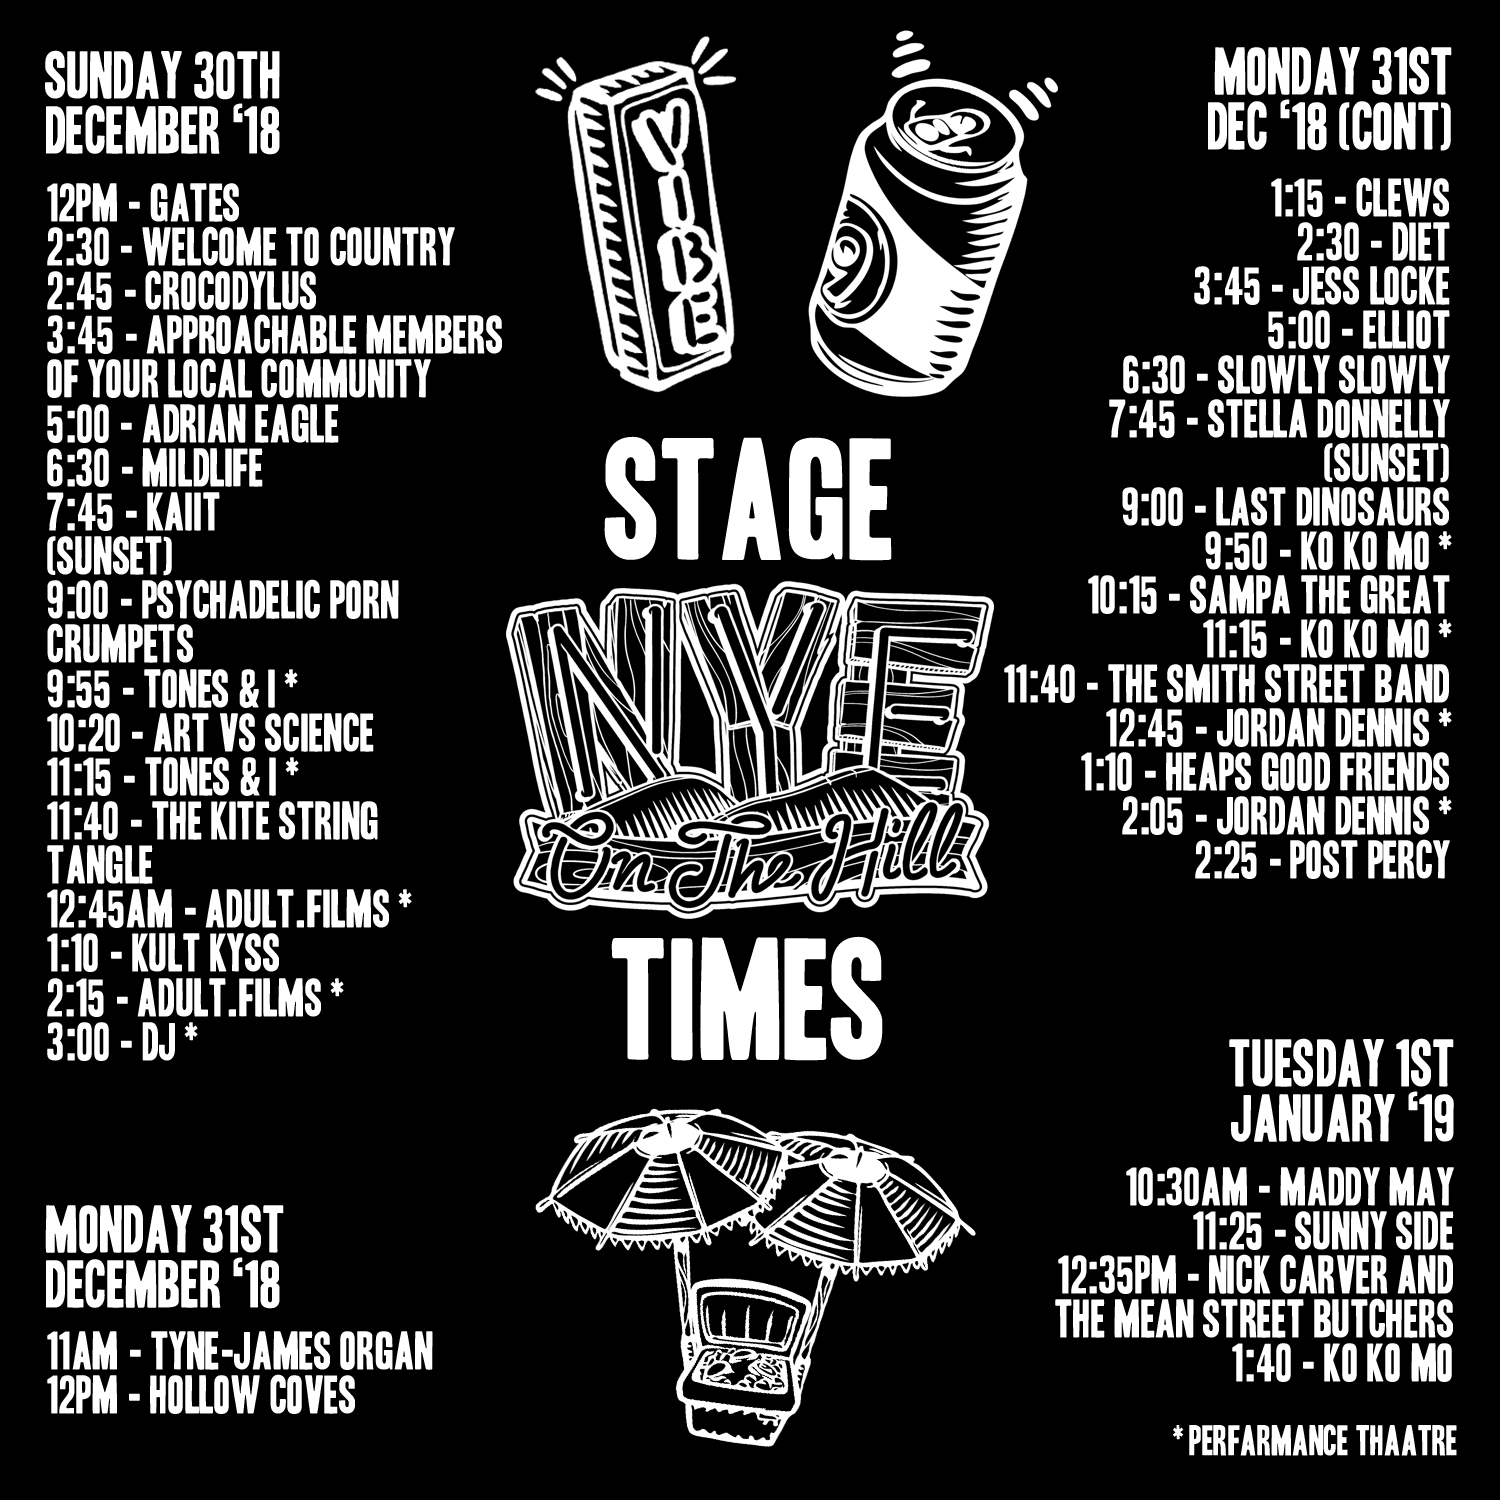 Nye On The Hill 2018 Set Times Announced Utter Buzz 1980 Dodge Aspen Wiring Diagram